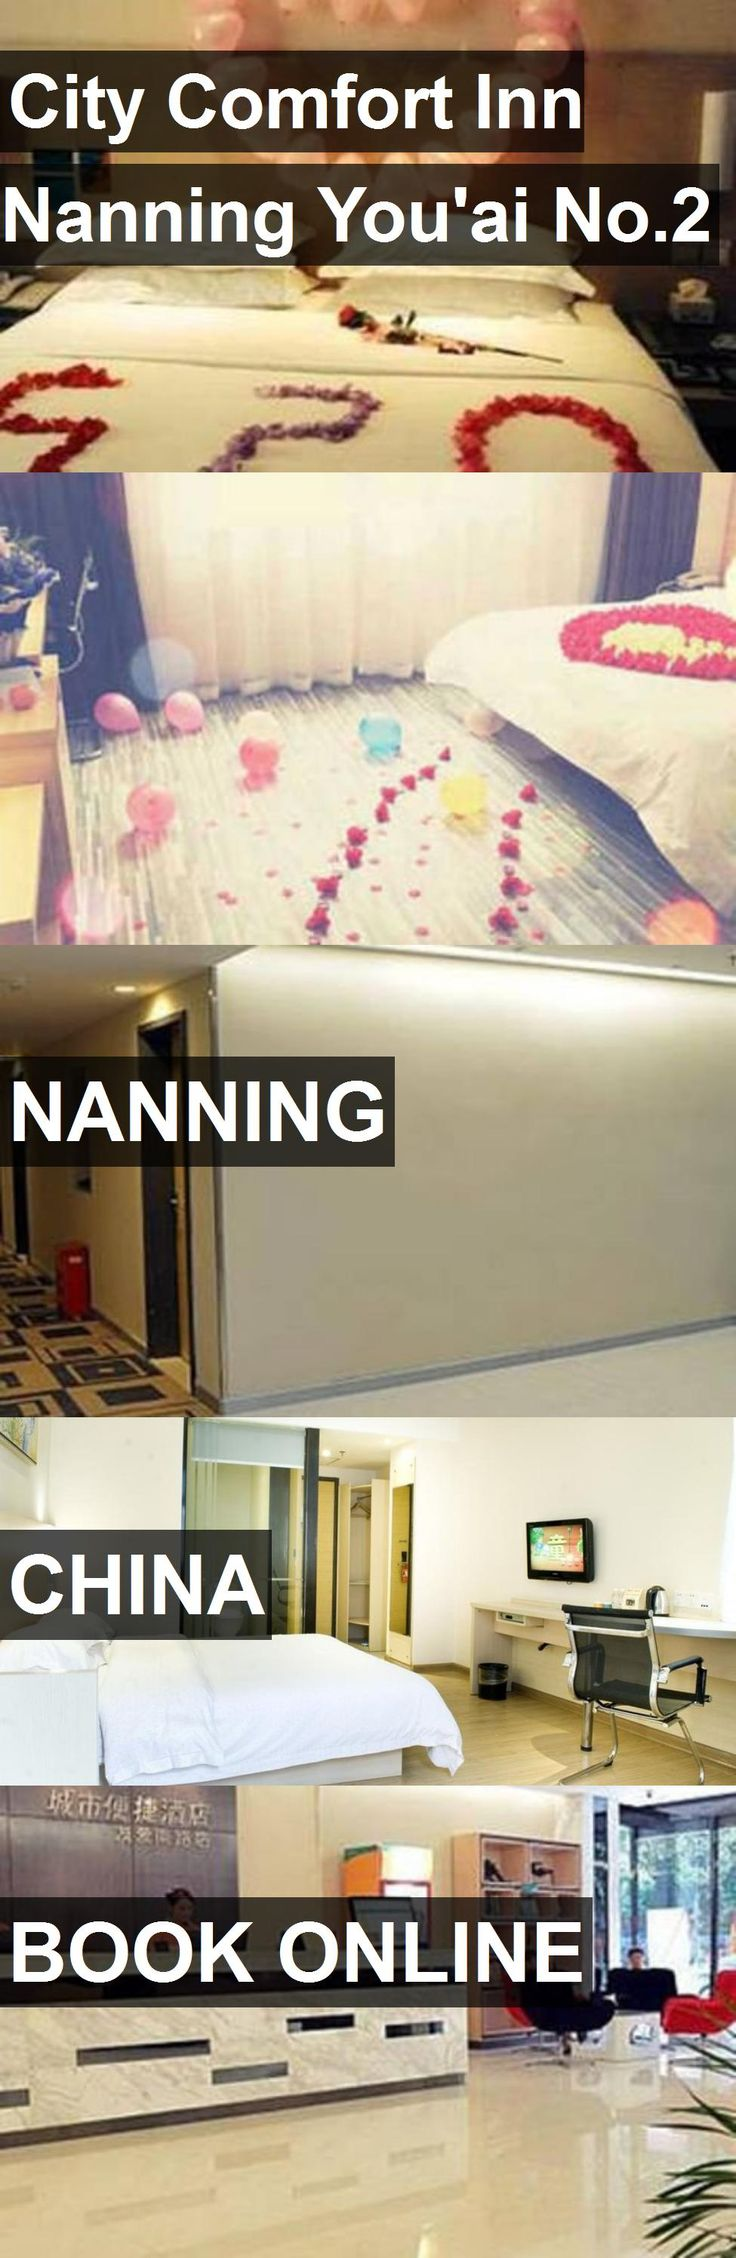 Hotel City Comfort Inn Nanning You'ai No.2 in Nanning, China. For more information, photos, reviews and best prices please follow the link. #China #Nanning #travel #vacation #hotel